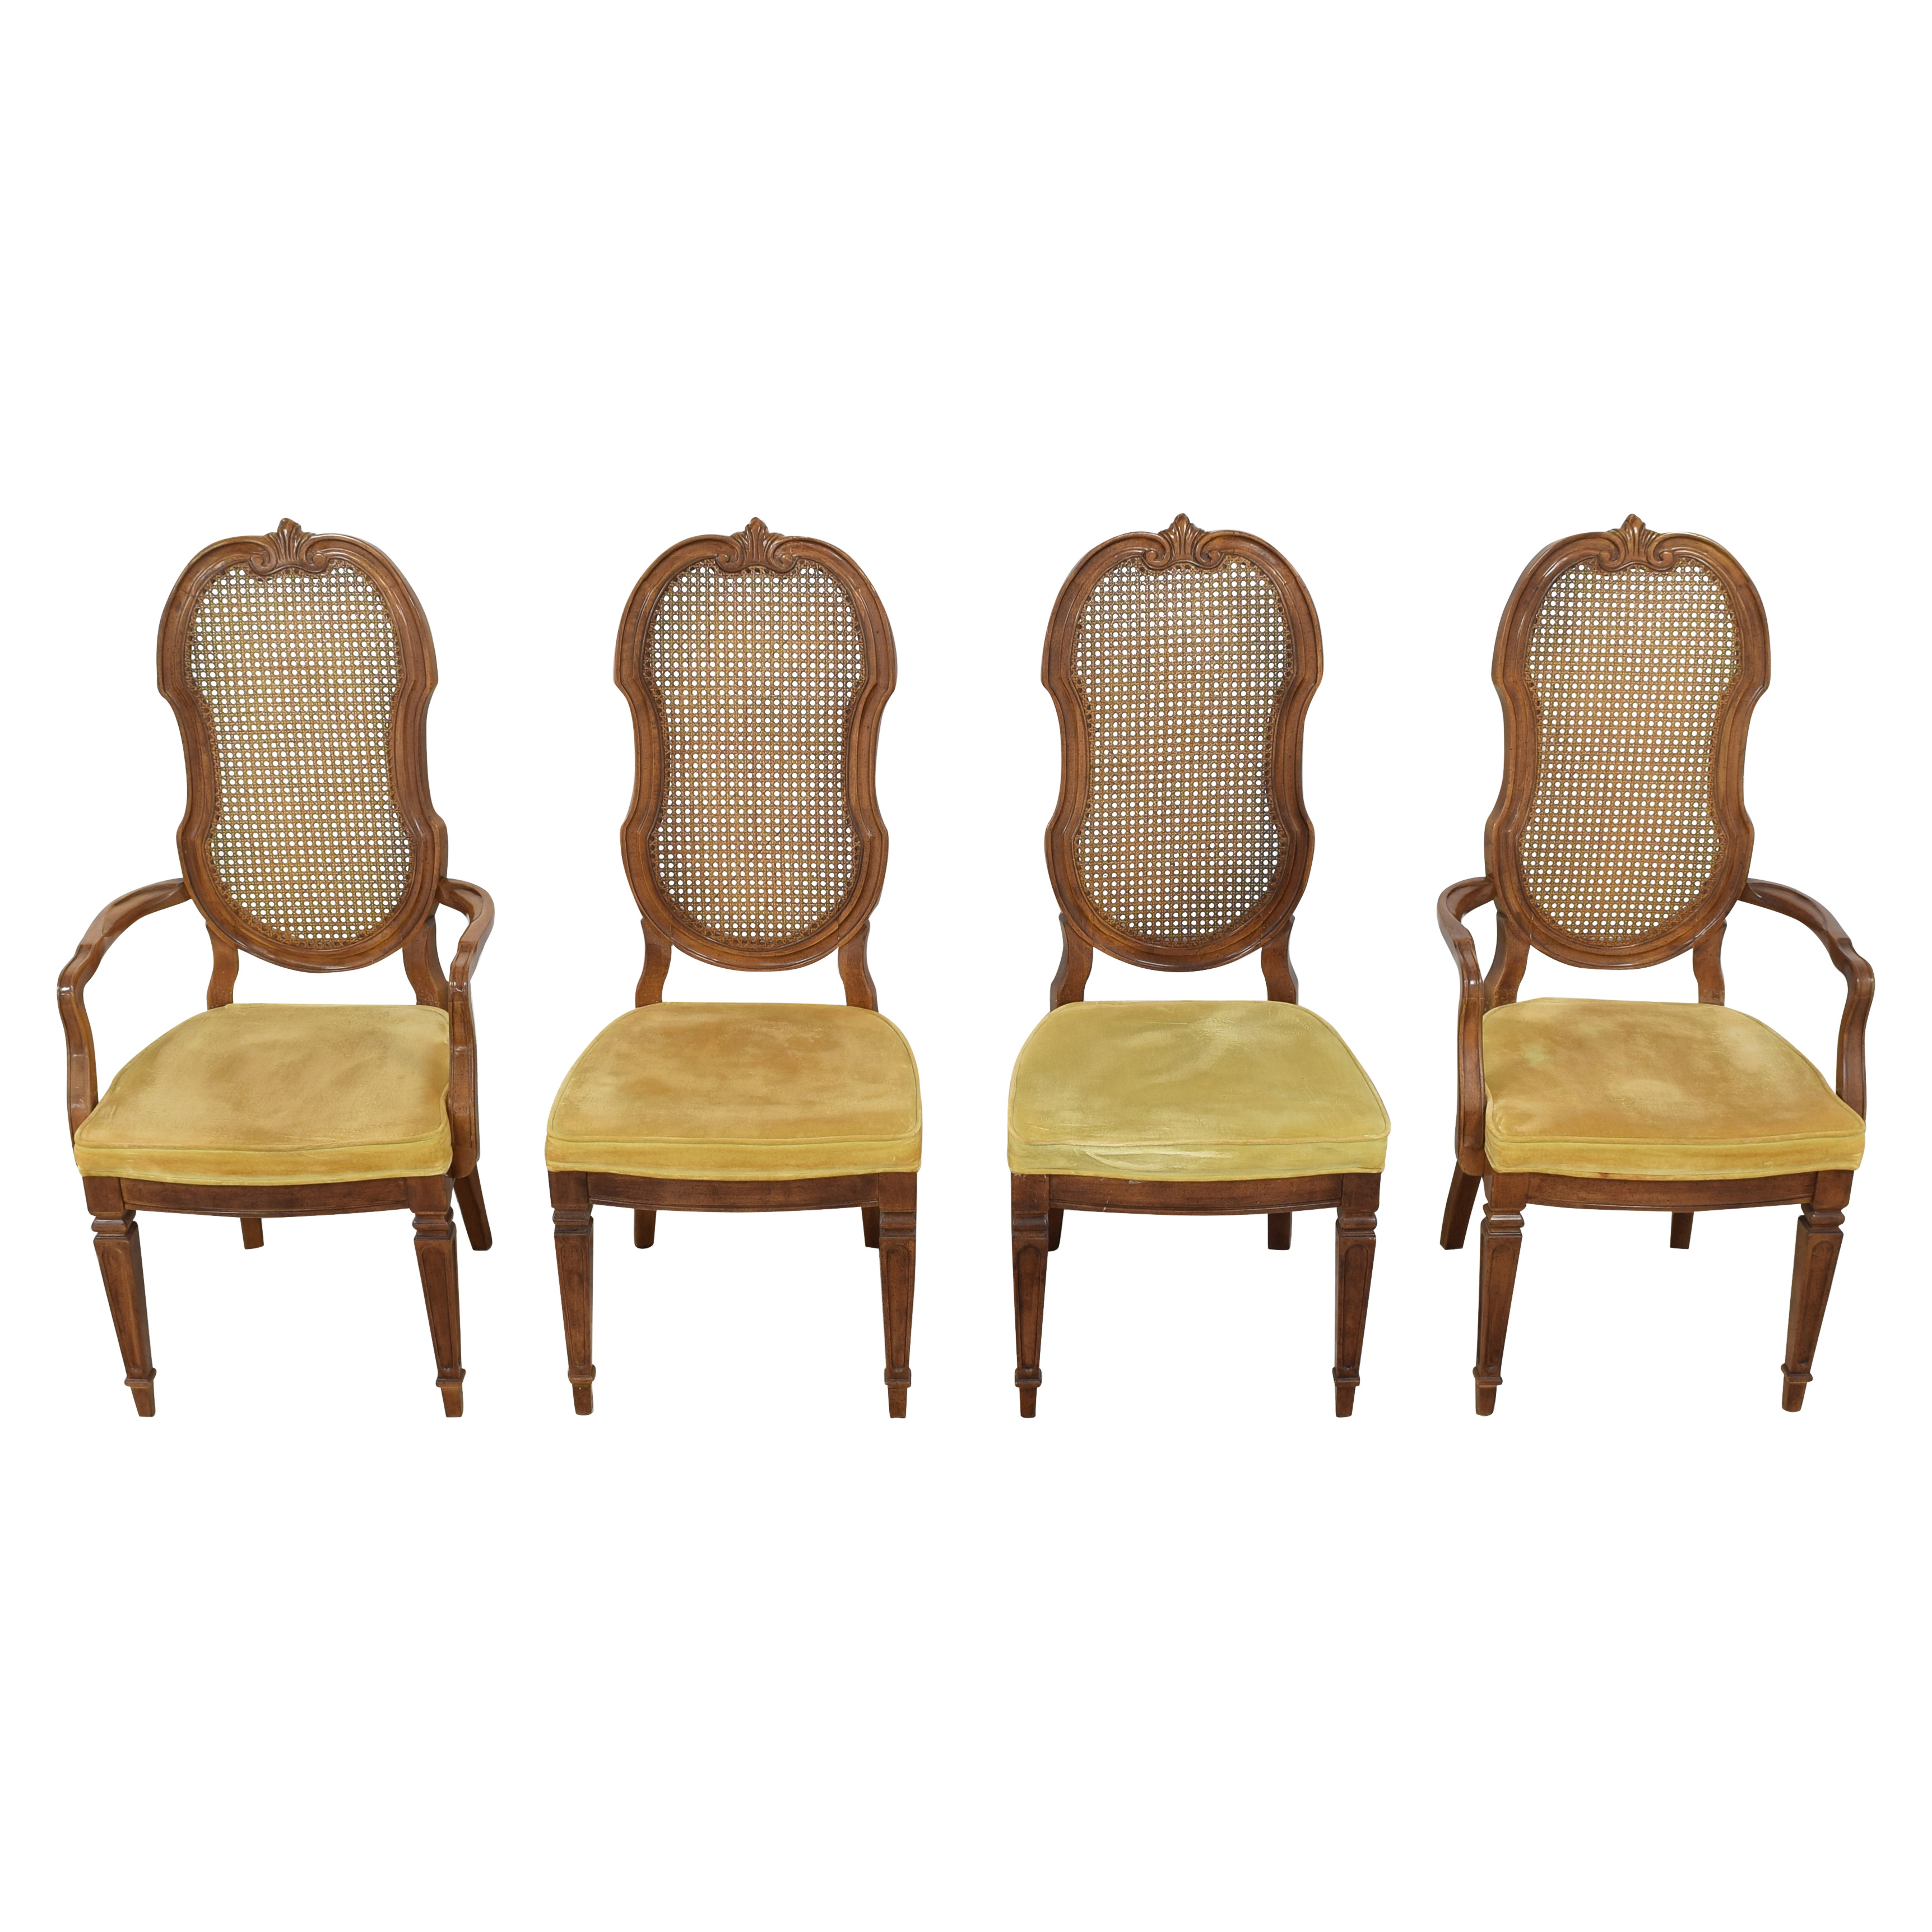 Thomasville Thomasville Italian Provincial Style Cane Back Dining Chairs ct